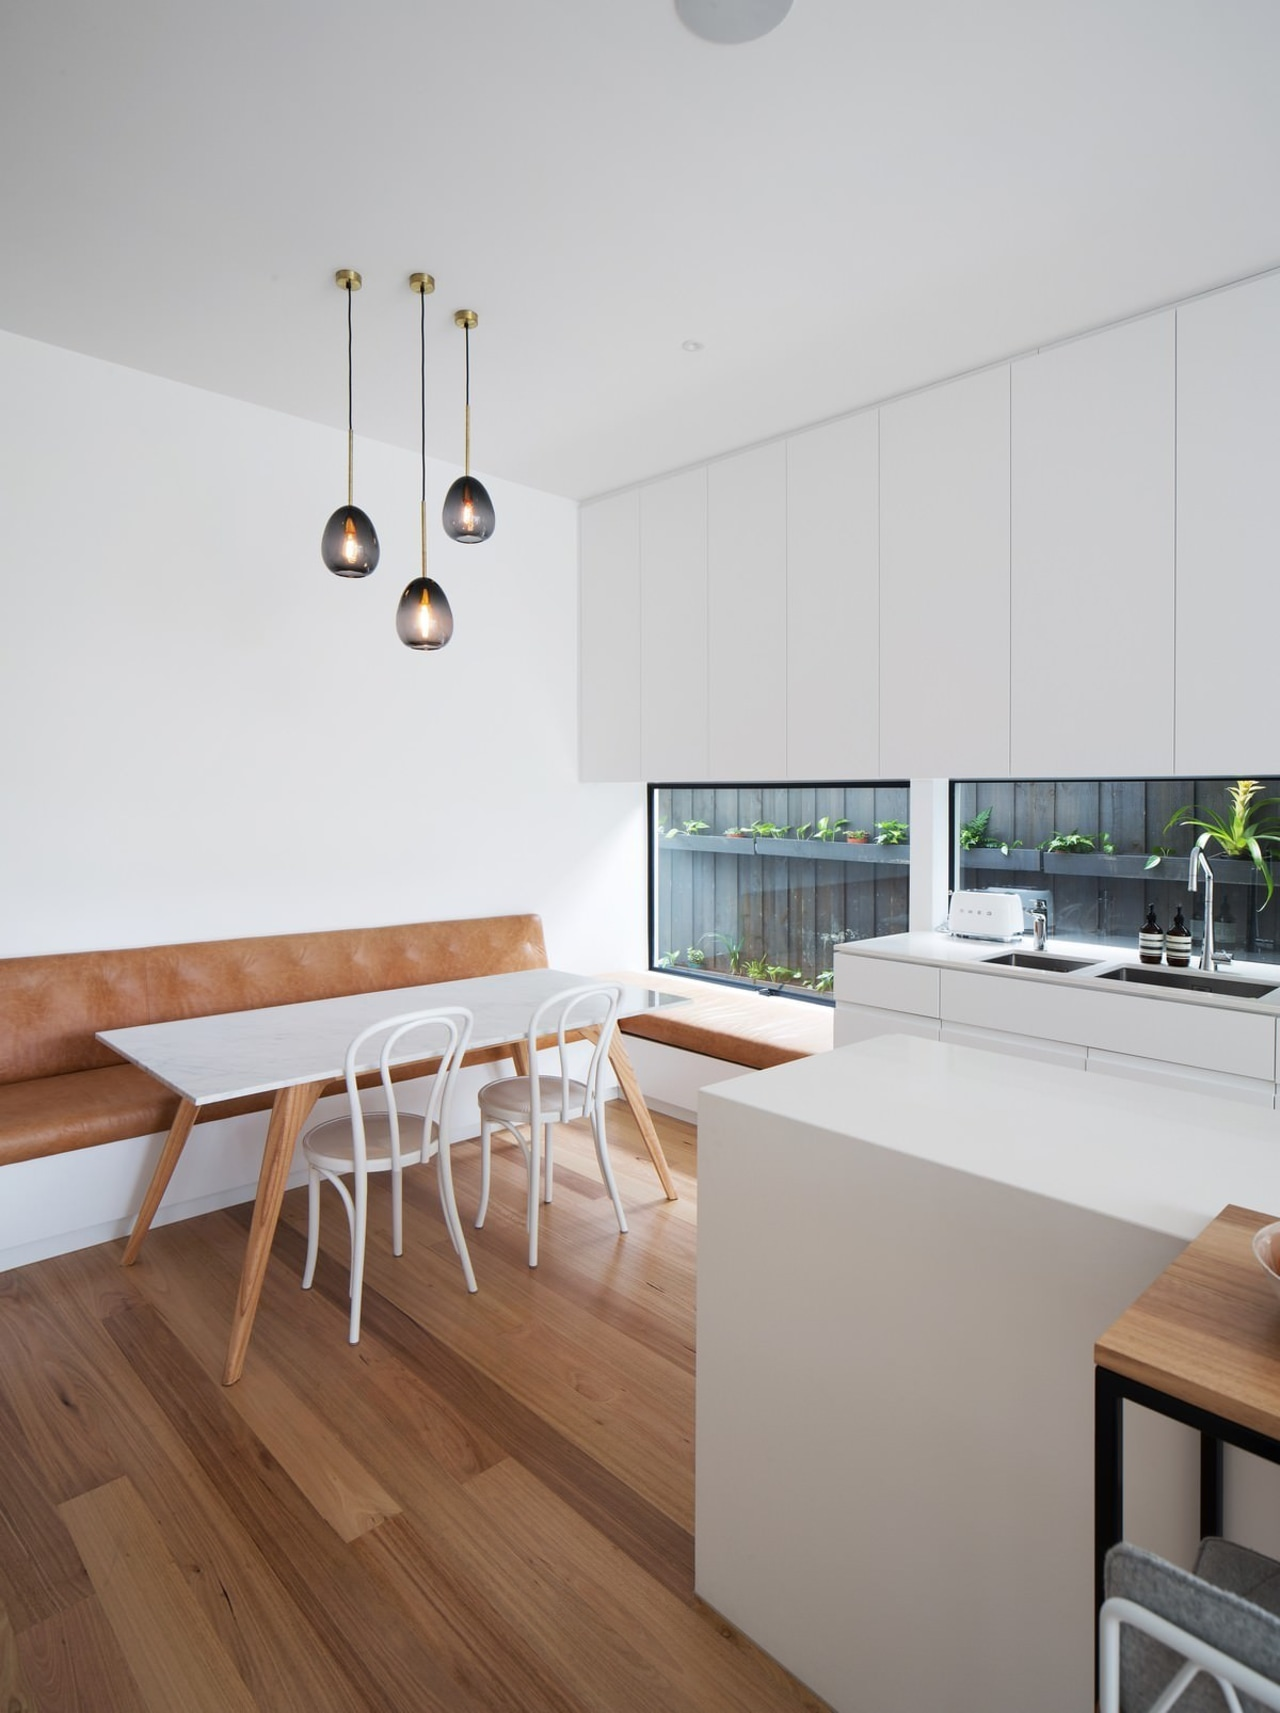 This dining area is ideal for a young floor, house, interior design, kitchen, product design, table, white, gray